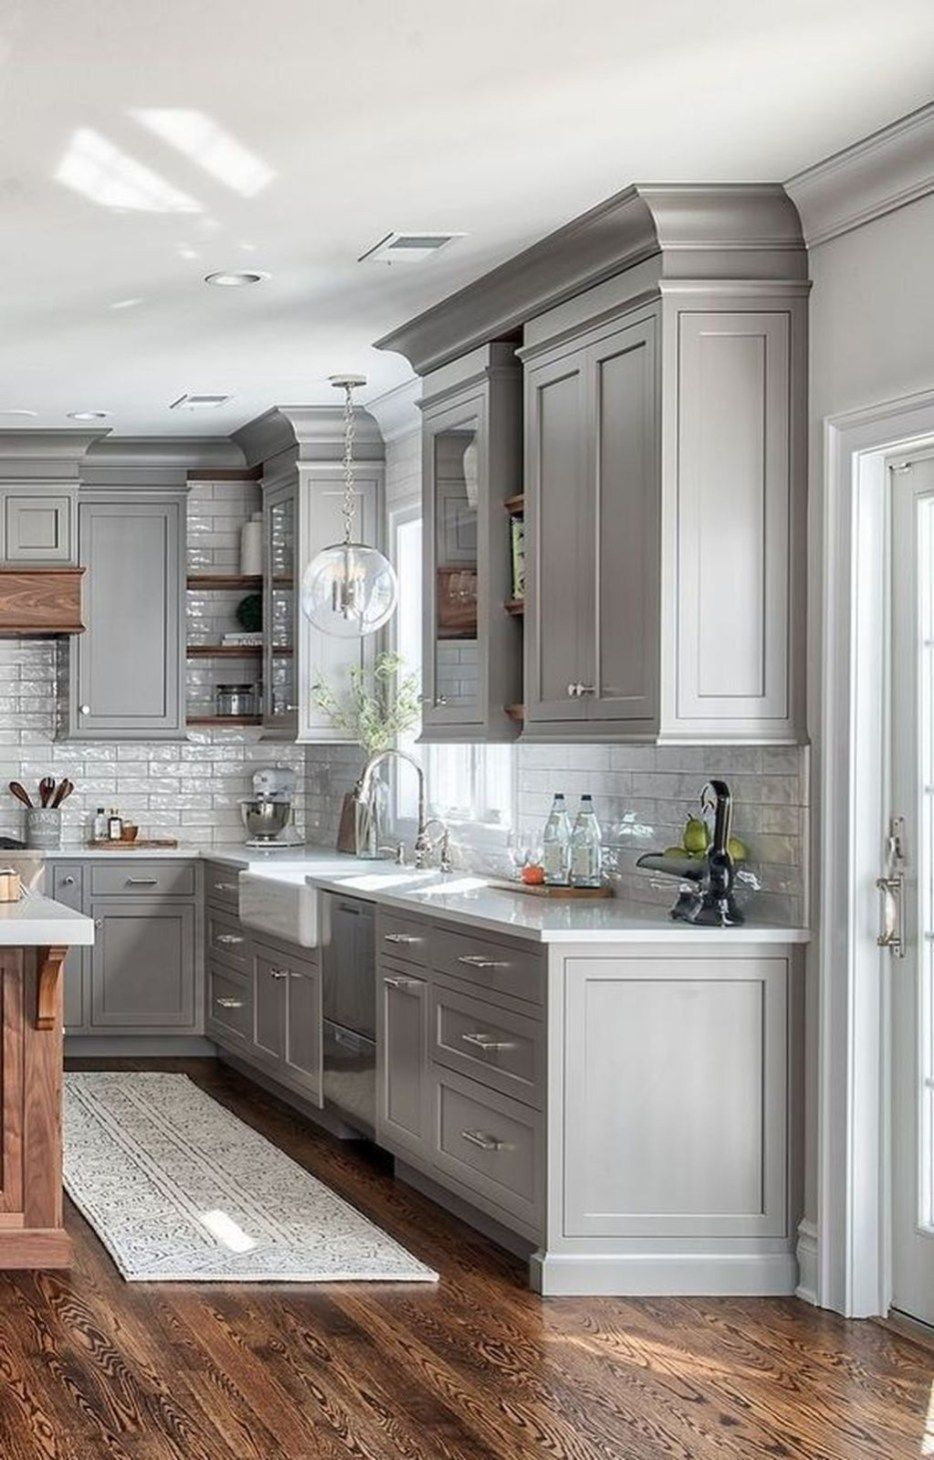 34 Luxury Farmhouse Kitchen Design Ideas To Bring Modern Look